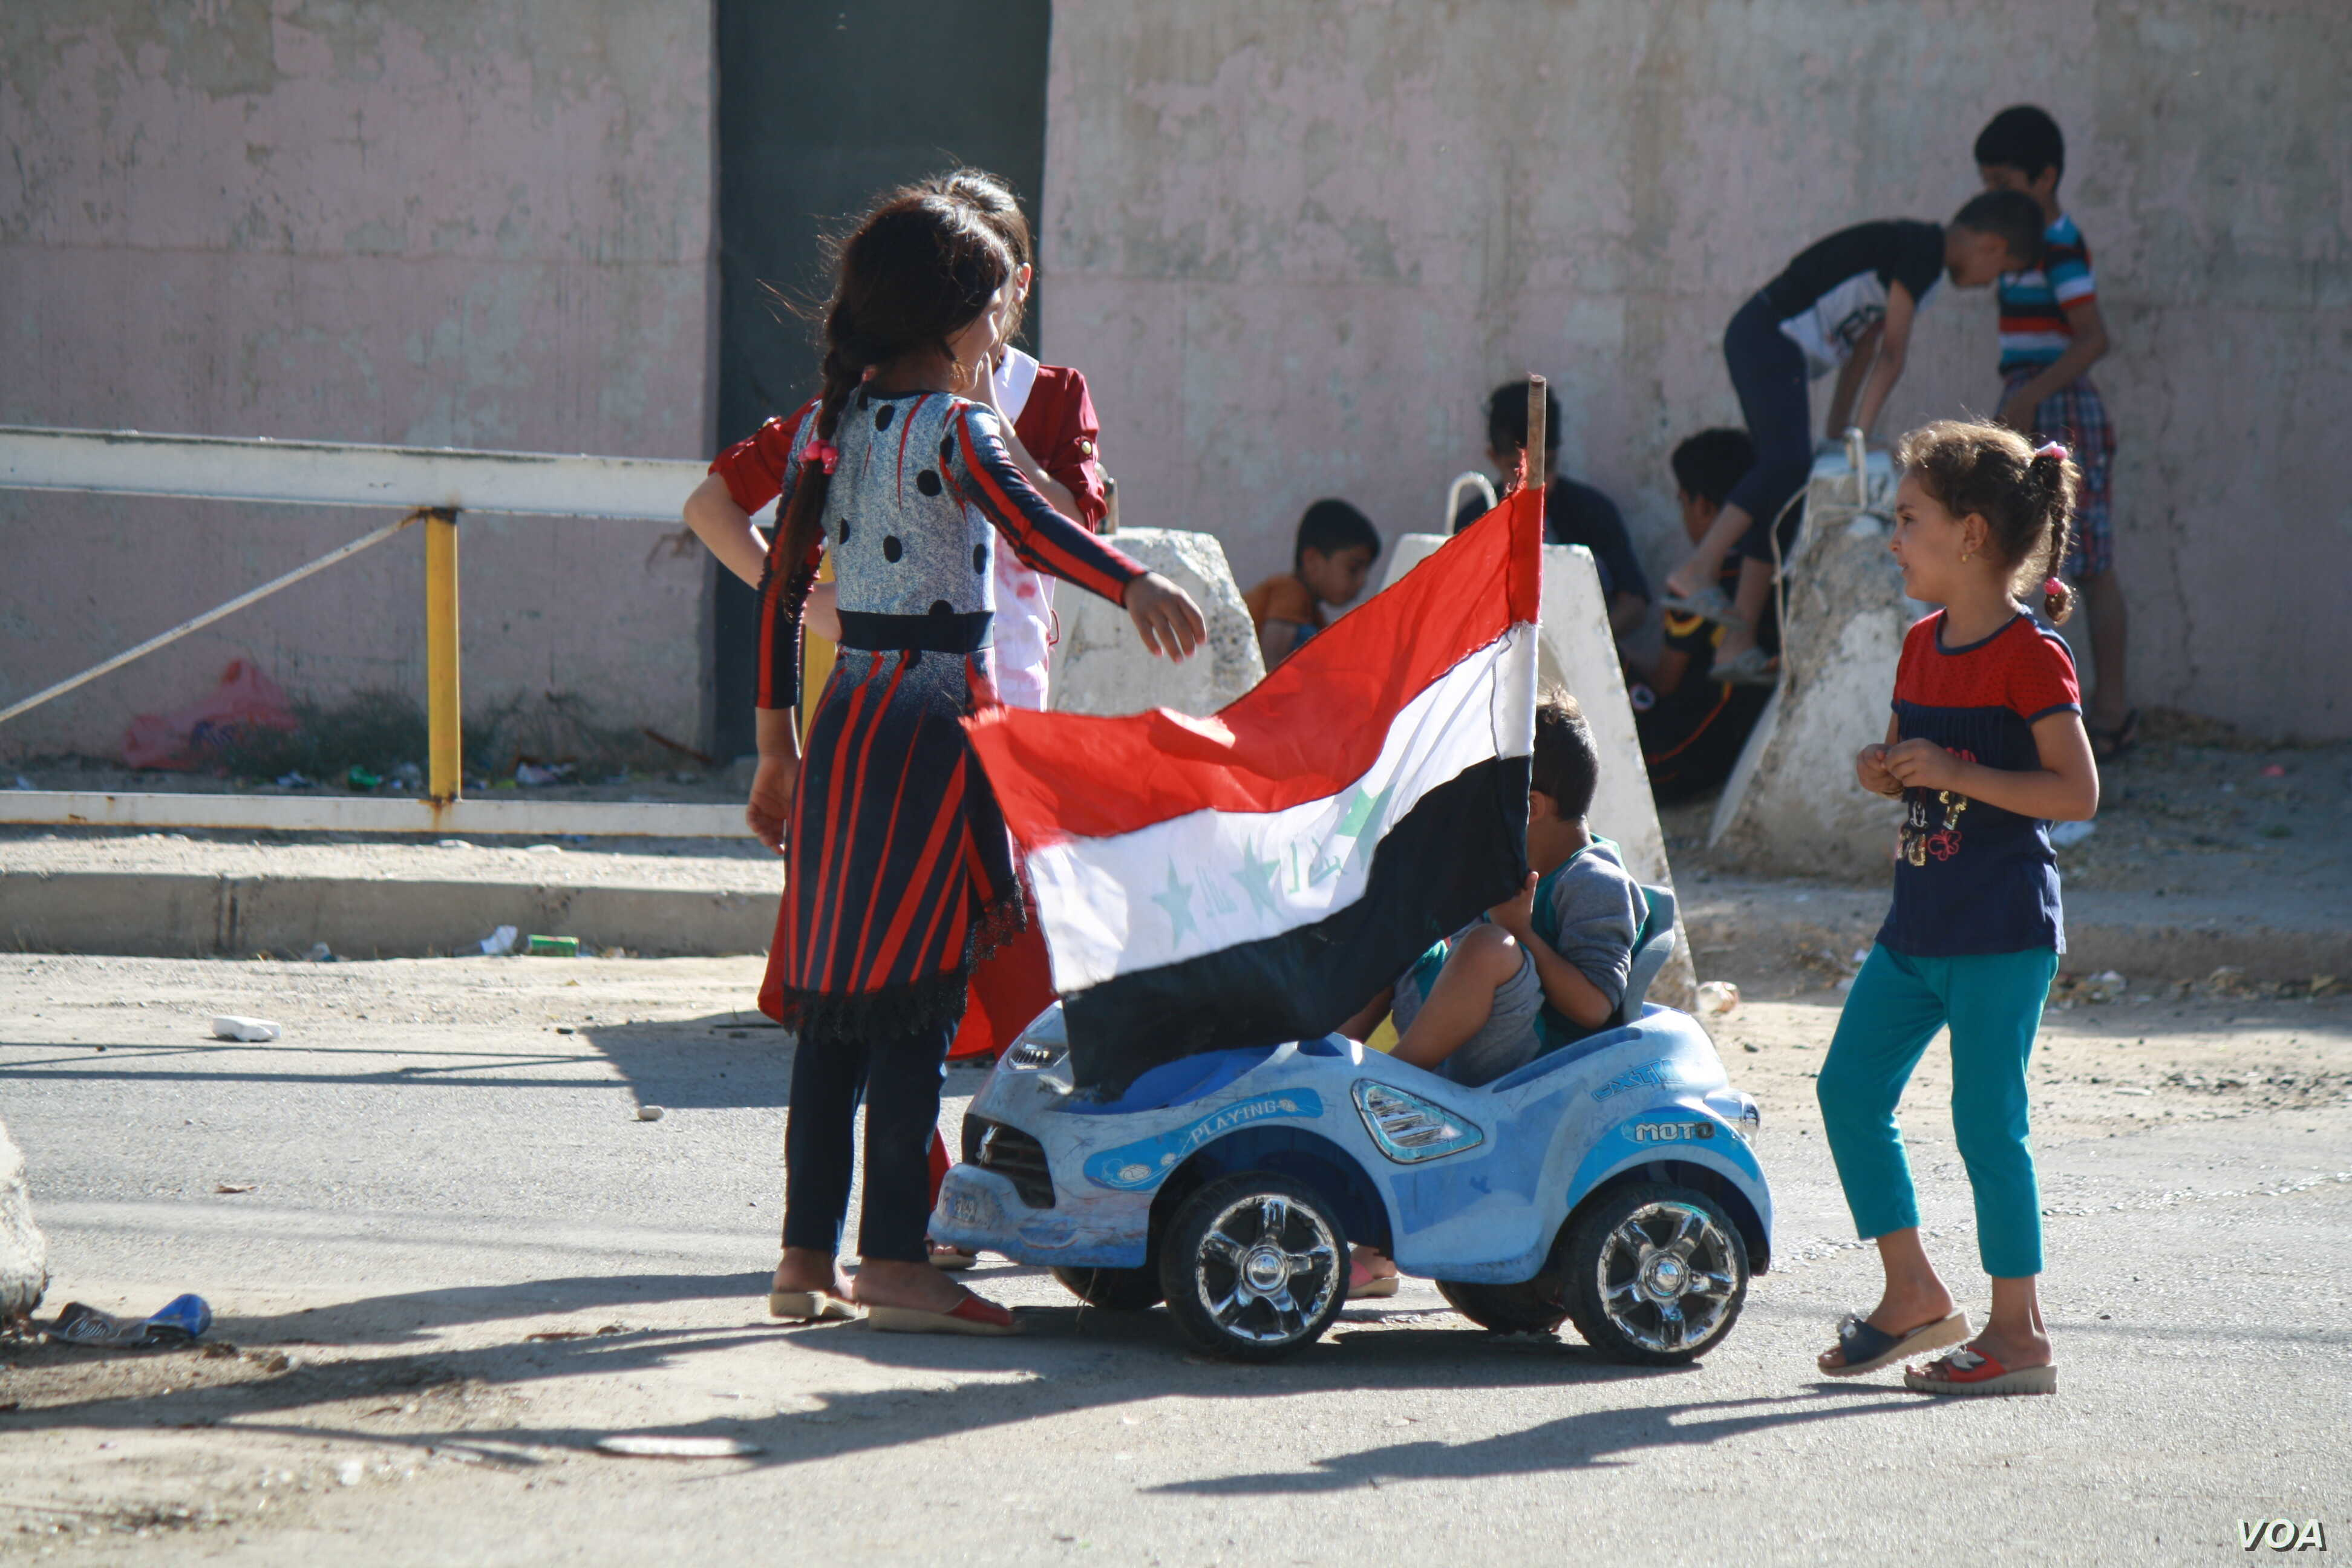 Children play with an Iraqi flag after Baghdad ordered troops were ordered to take Kirkuk from Kurdish forces on Oct. 17, 2017 in Kirkuk, Iraq. (H.Murdock/VOA)